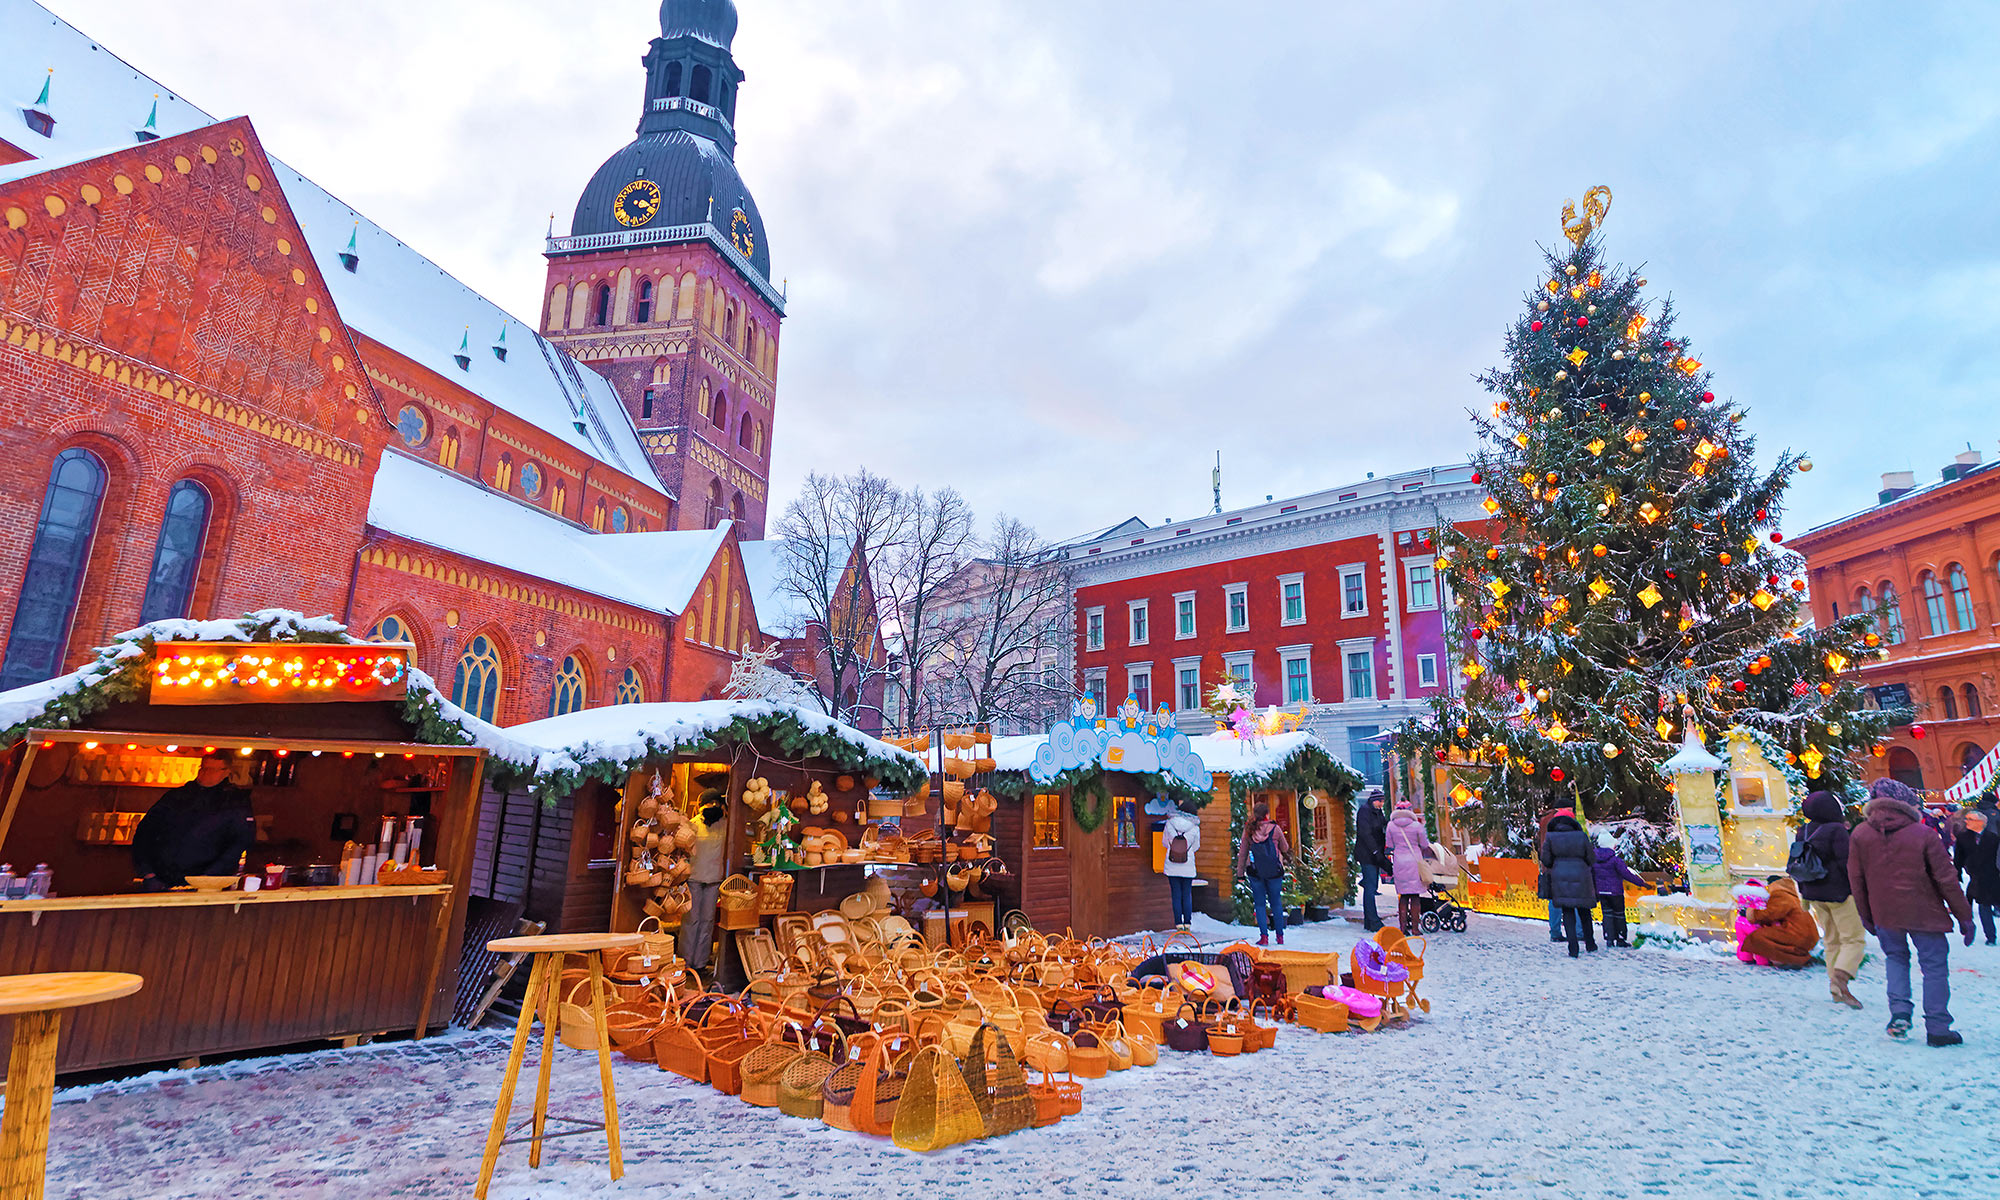 6 Days To Christmas The Most Amazing Christmas Towns Around The World 4 Days To Christmas Days To Christmas 6 Days To Christmas: The Most Amazing Christmas Towns Around The World 6 Days To Christmas The Most Amazing Christmas Towns Around The World 4